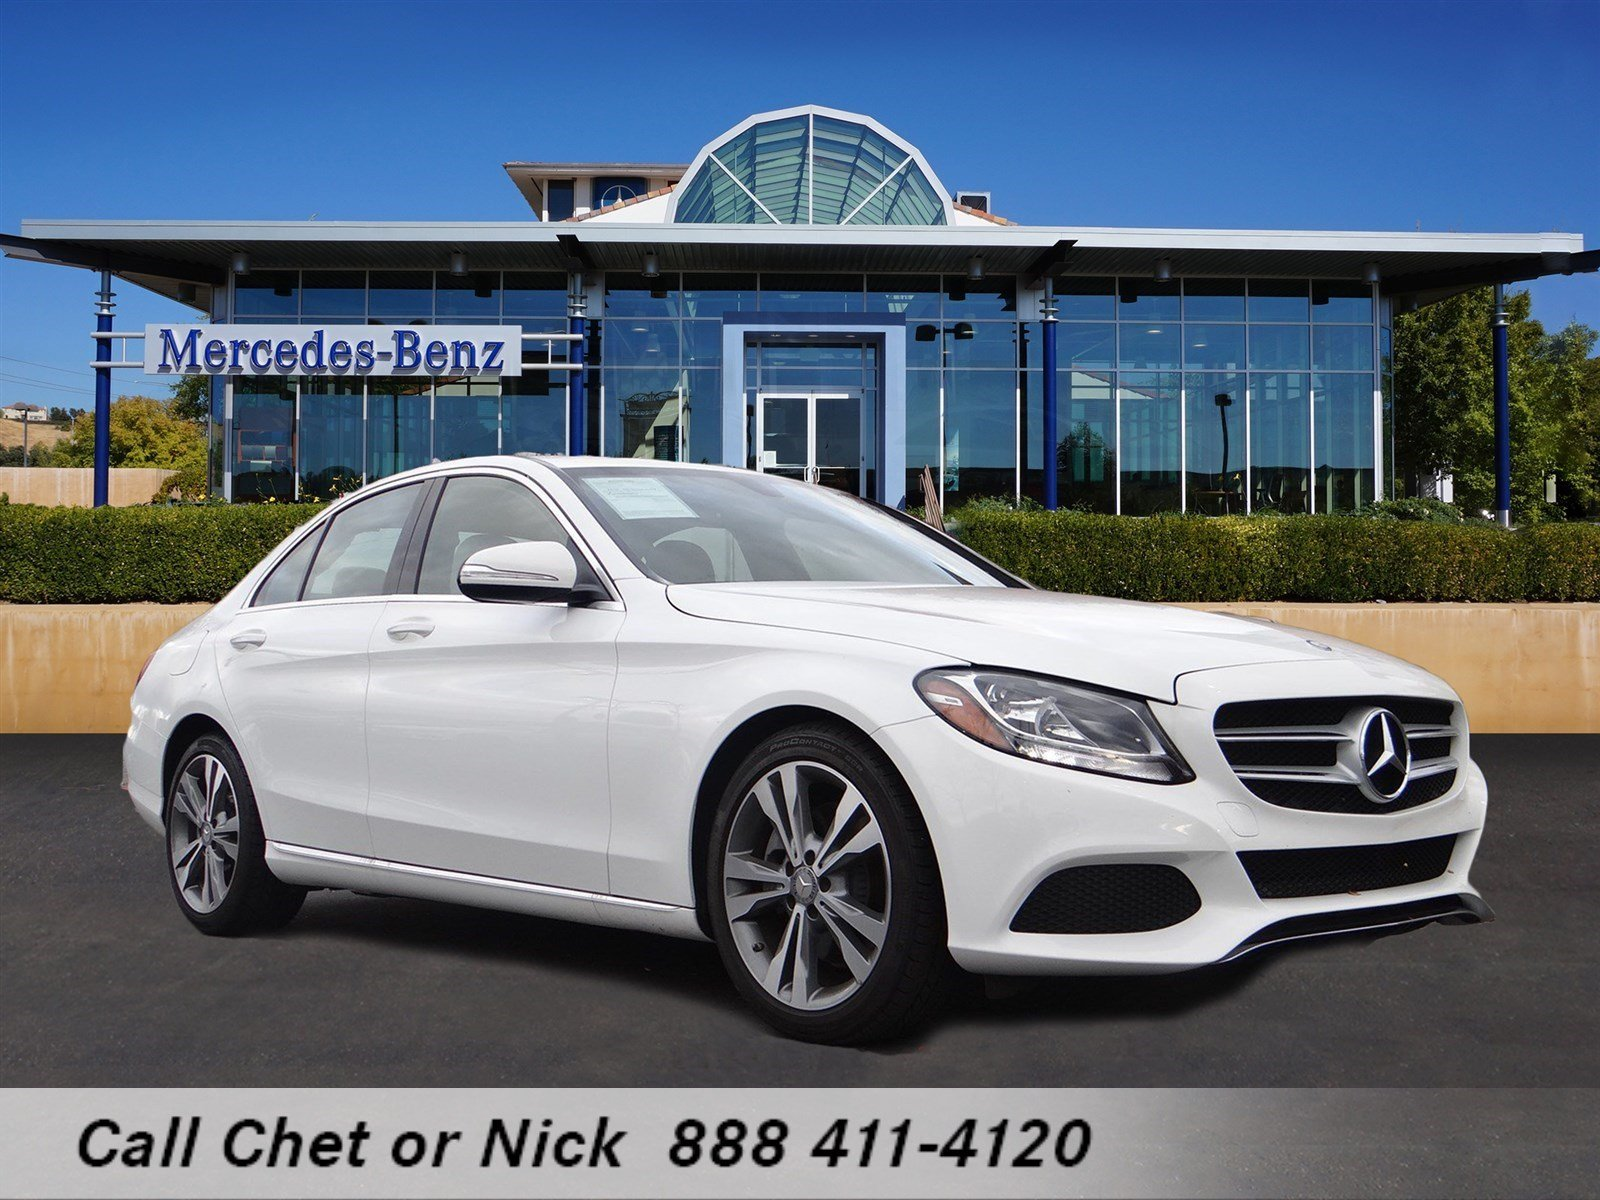 Certified pre owned 2015 mercedes benz c class c300w 4dr for Authorized mercedes benz service centers near me